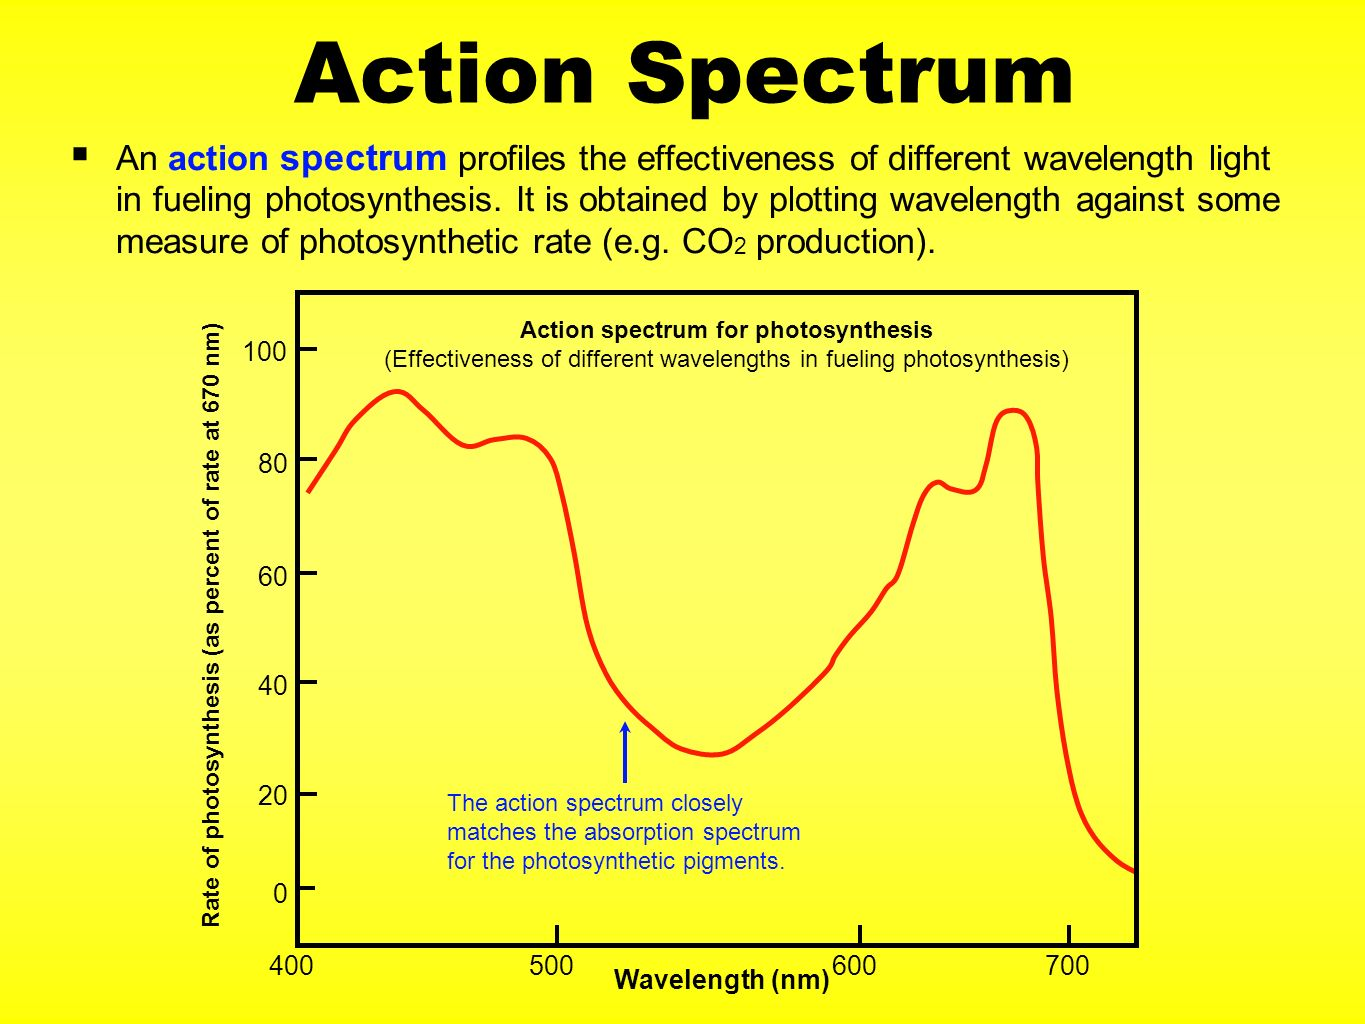 the effect of different wavelenghts of Photosynthesis is most efficient at light wavelengths between 400 and 500 nanometers and 600 to 700 nanometers the green pigment, chlorophyll, restricts the efficiency of photosynthesis photosynthesis is most efficient at light wavelengths between 400 and 500 nanometers and 600 to 700 nanometers.